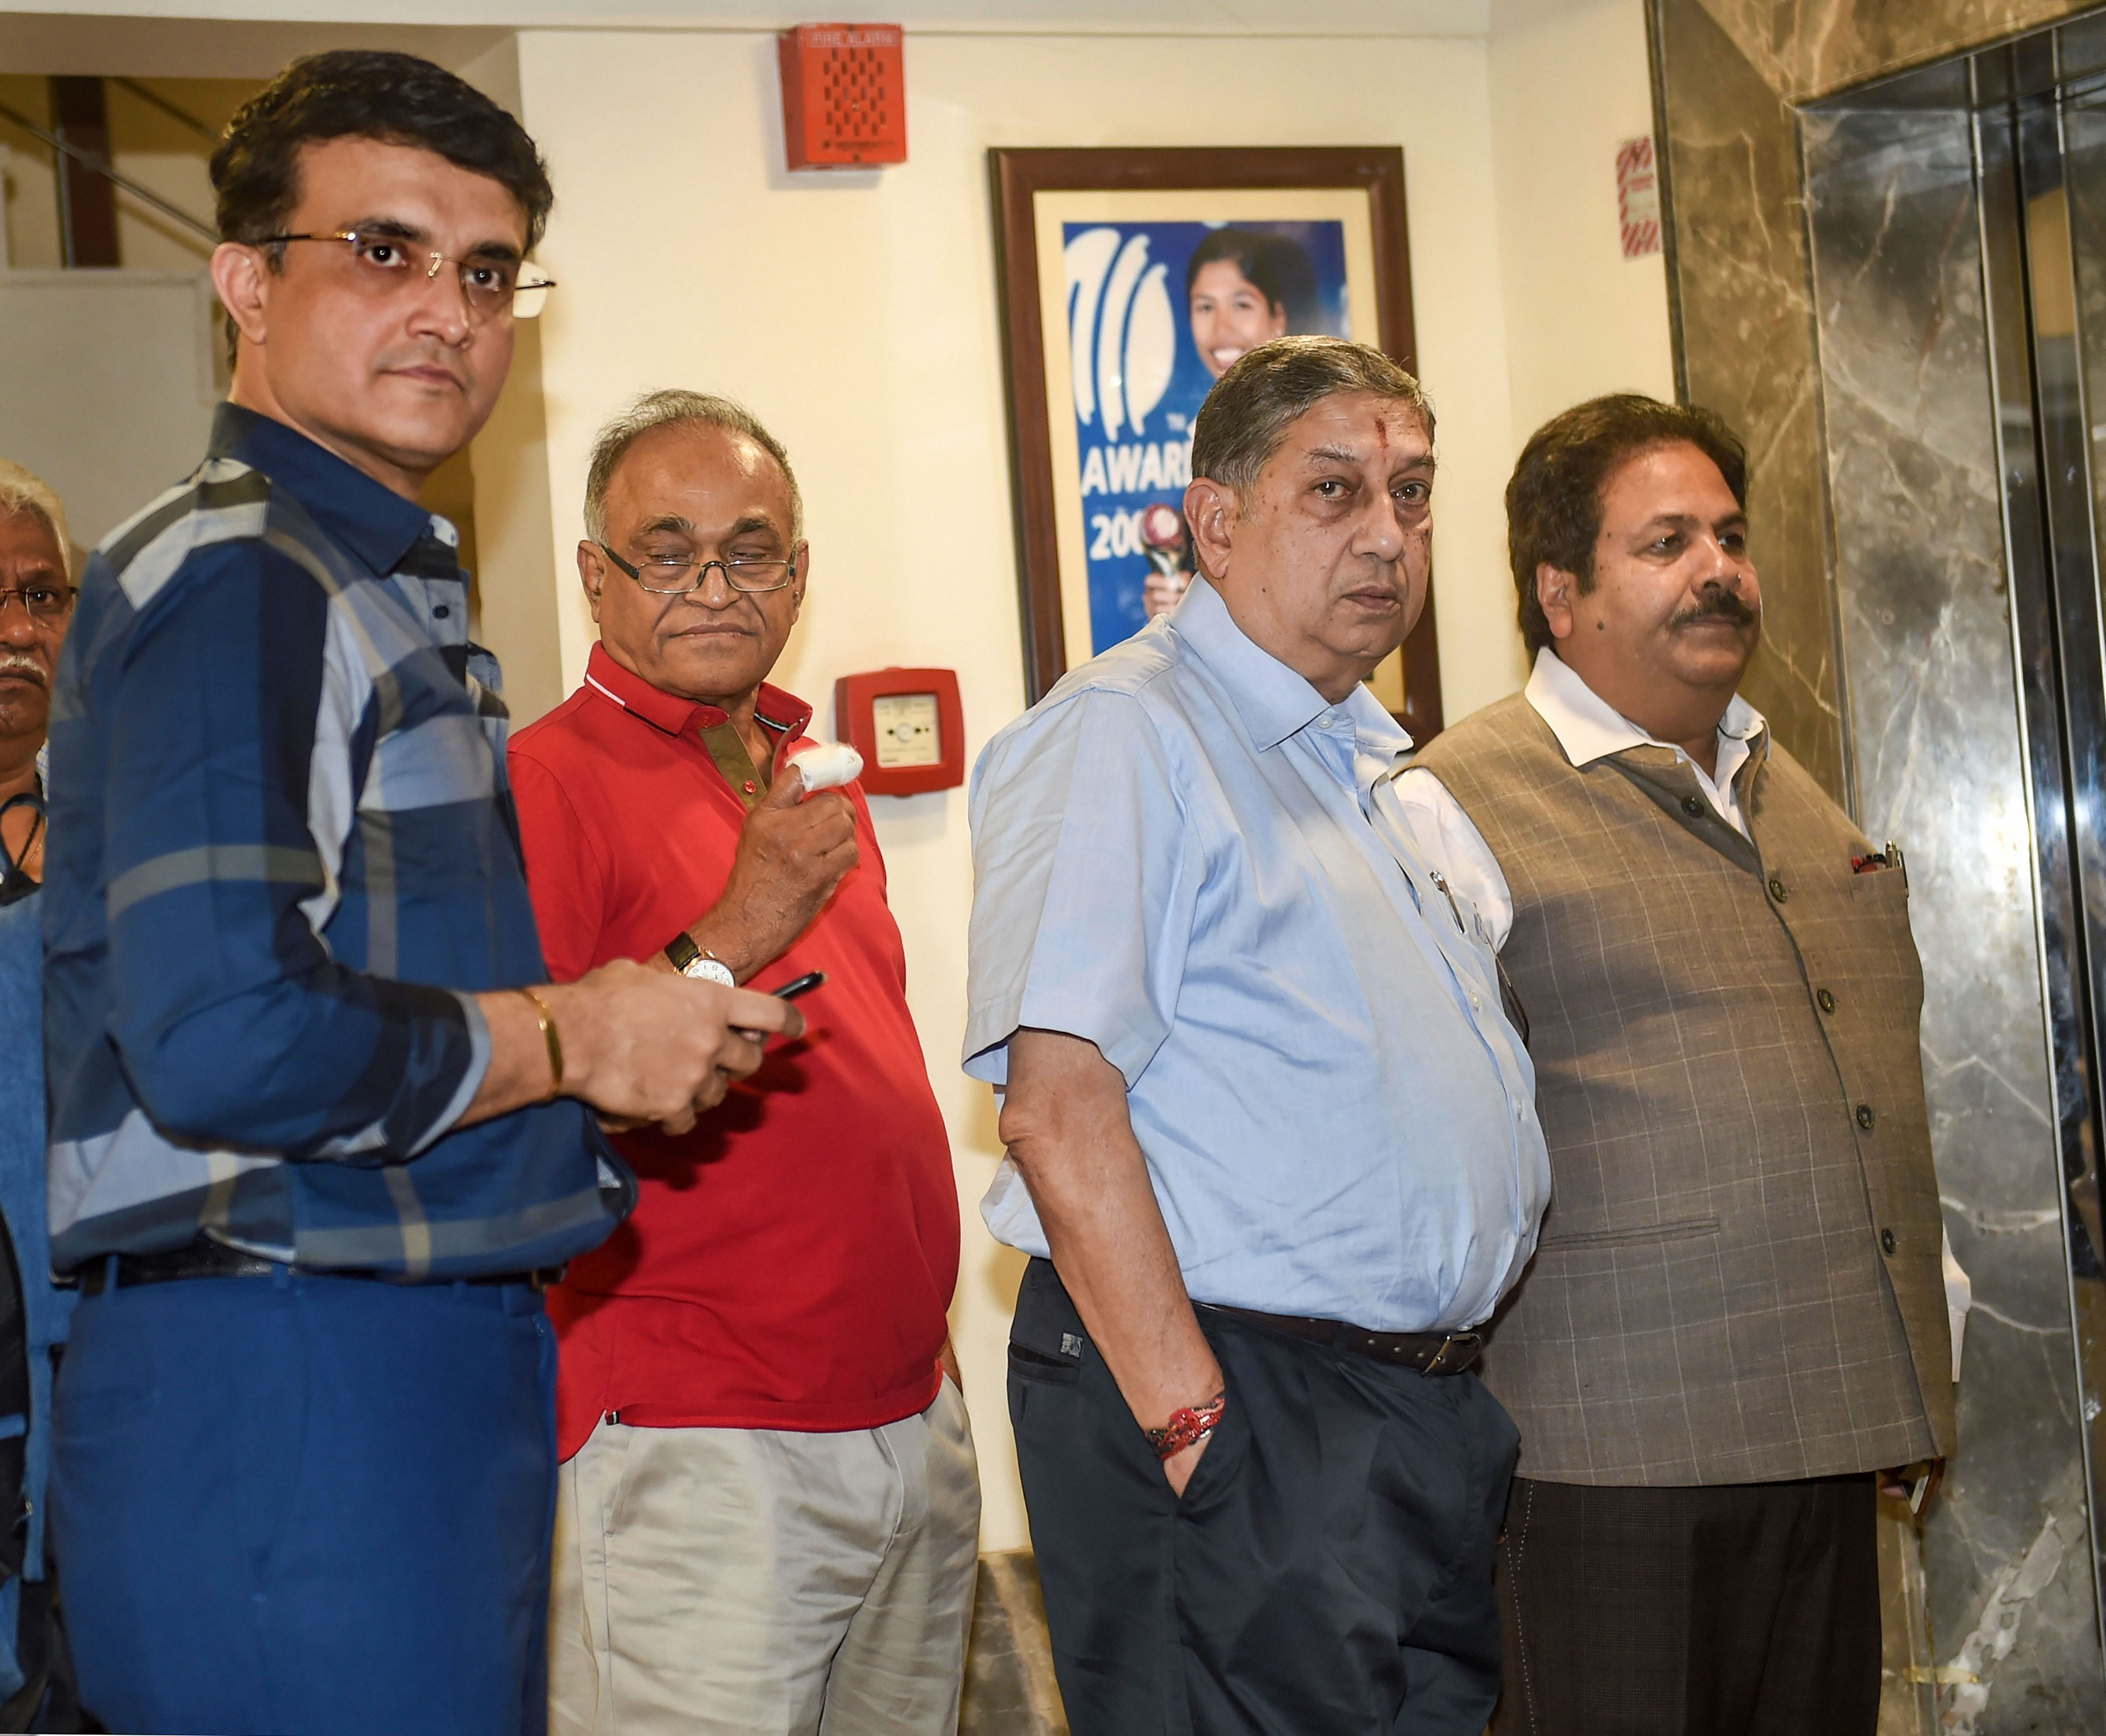 Former cricketer Saurav Ganguly arrives at the BCCI headquarters, along with former BCCI chief N. Srinivasan, to file his nomination for the board president's post, in Mumbai, Monday, October 14, 2019.